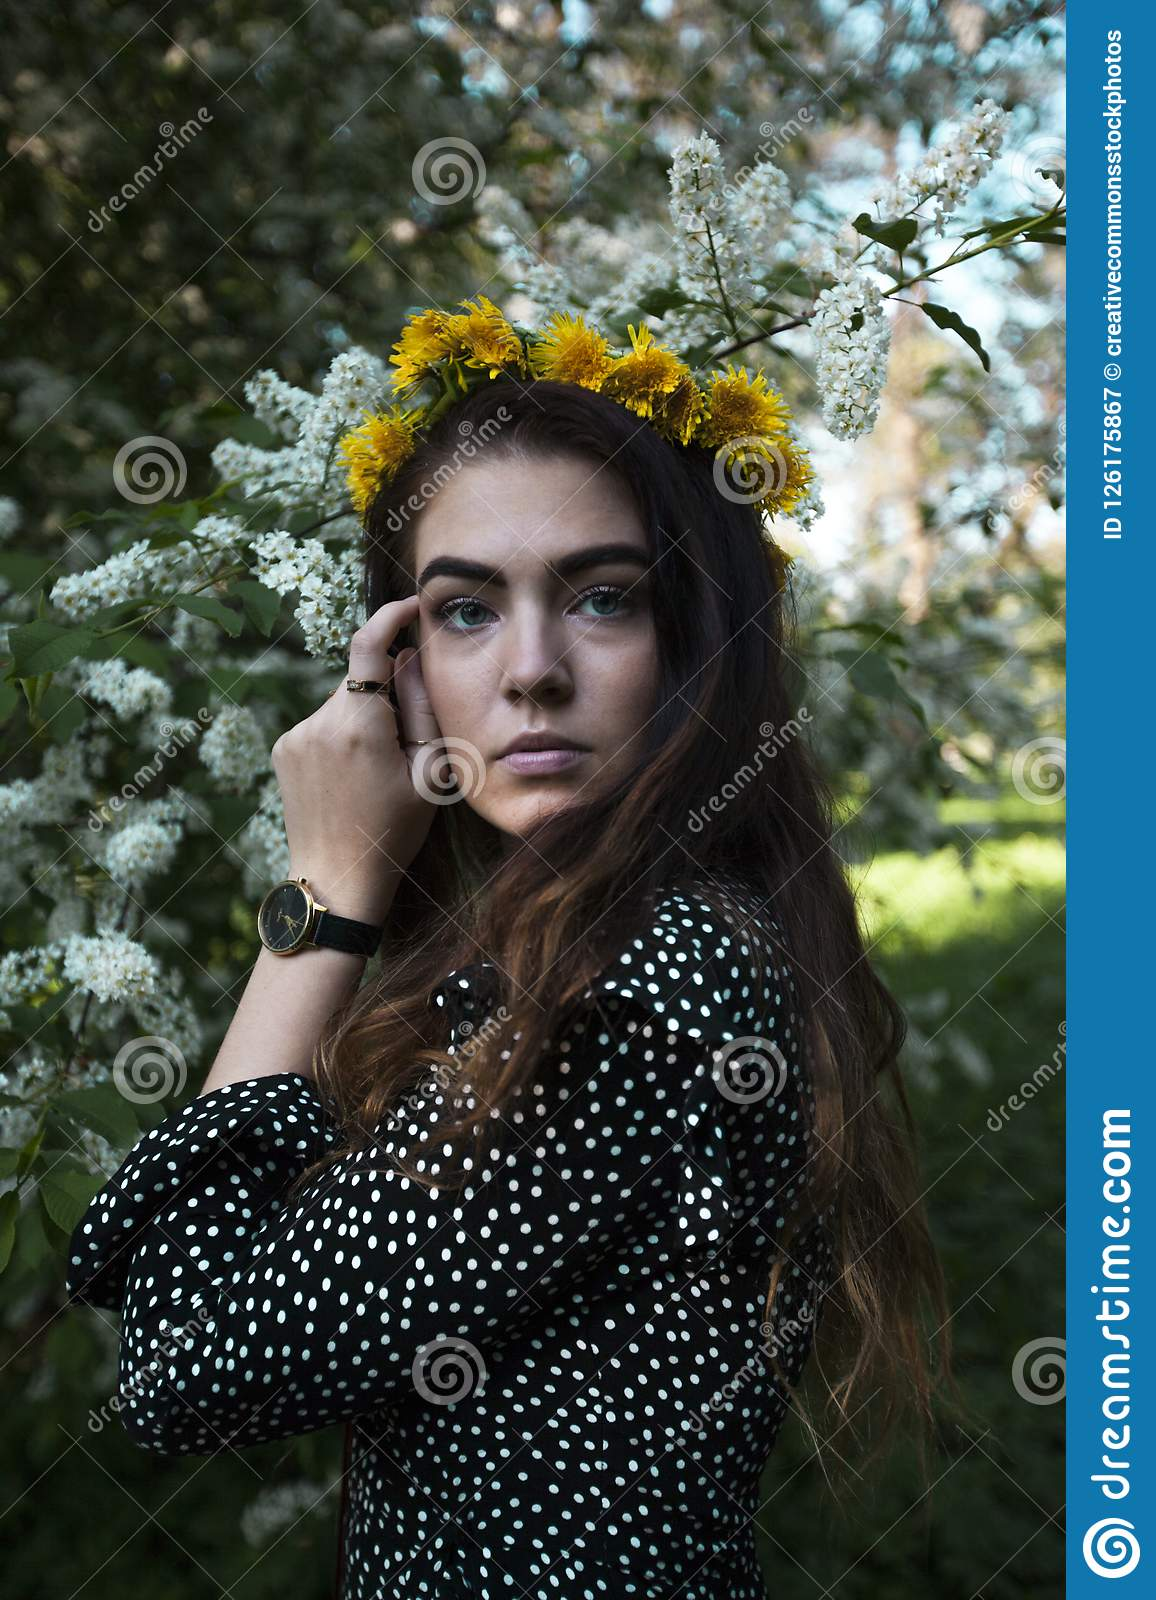 Free Public Domain Cc0 Image Photography Of Wearing Flower Crown